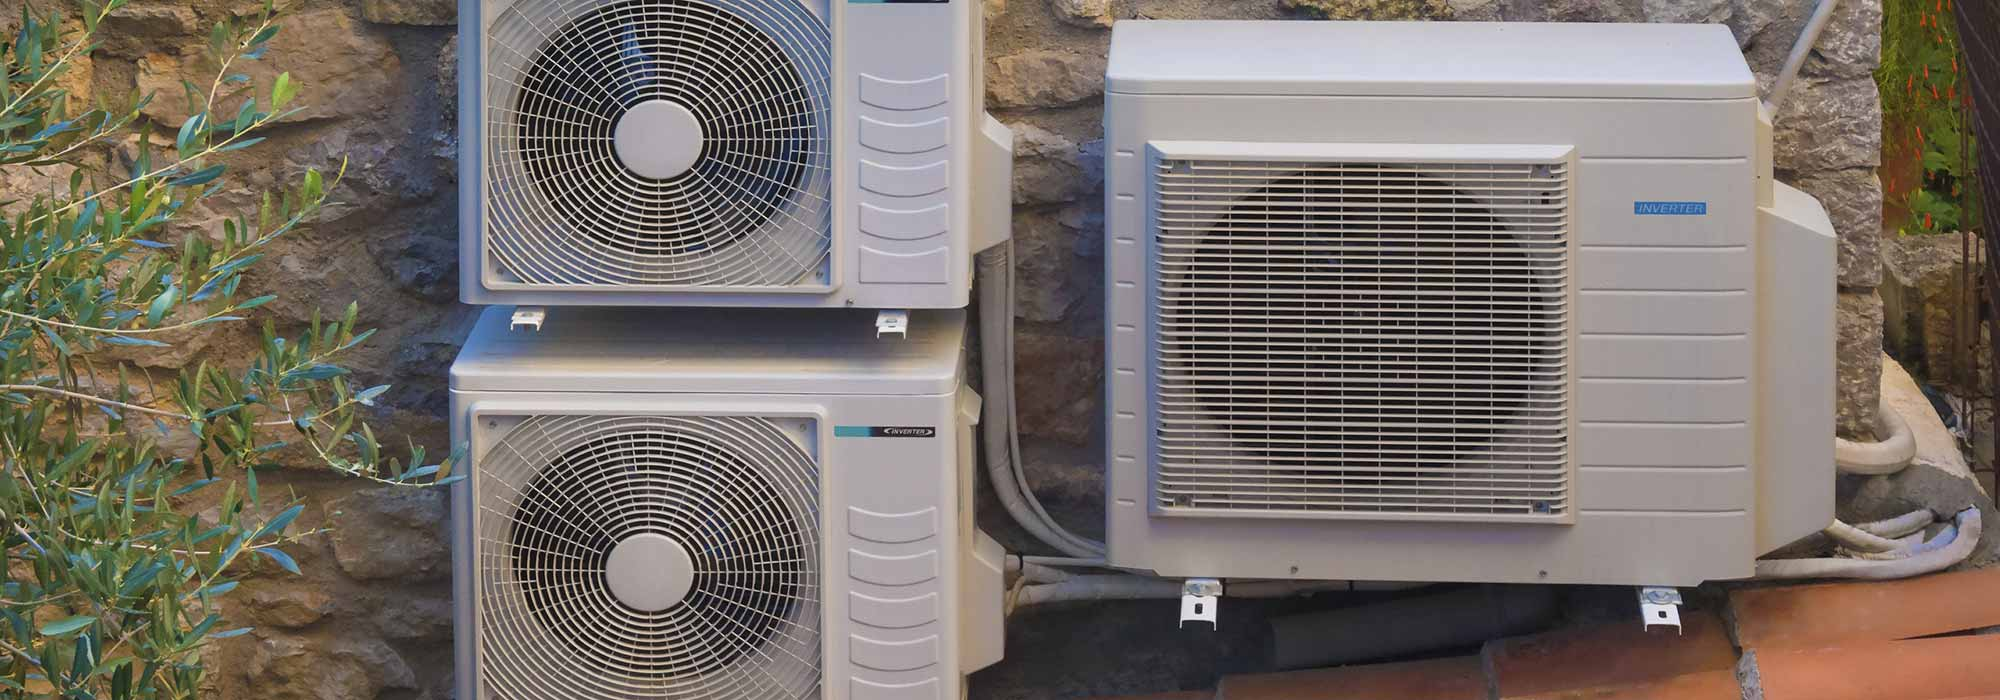 EASY STEPS TO KEEP YOUR AIR-CONDITIONING UNIT RUNNING SMOOTHLY